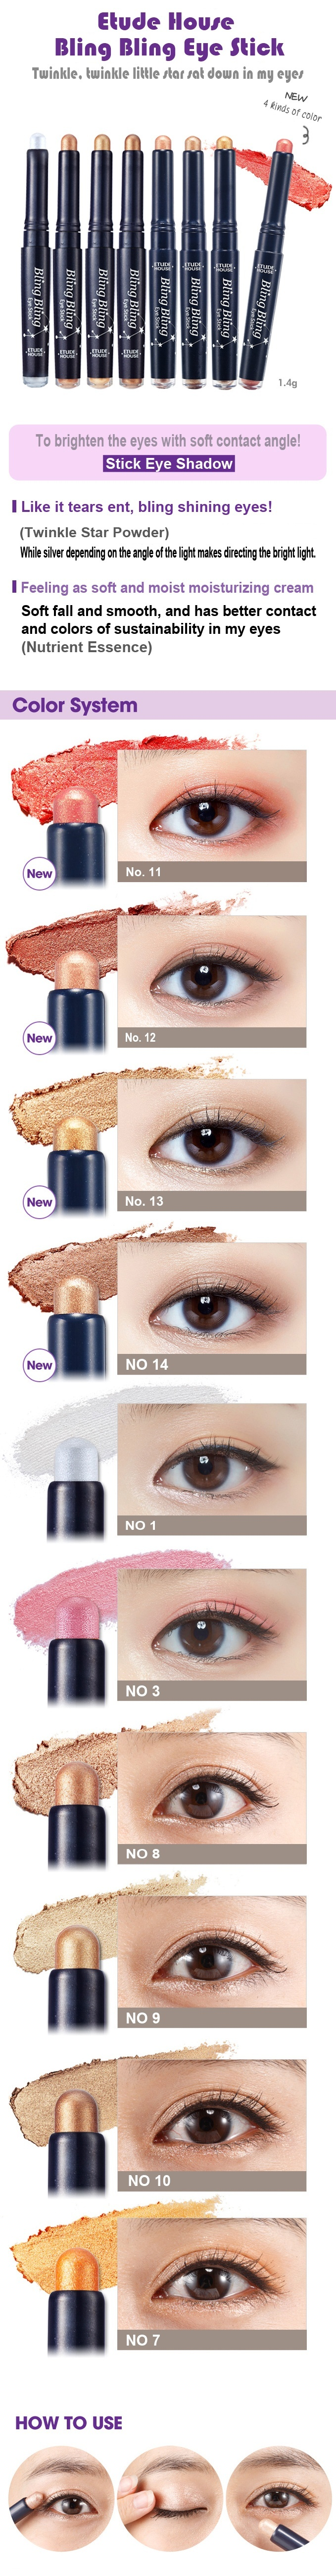 Buy 1 Deal Deals For Only S79 Instead Of S0 Etude House Styling Eyeliner Use A Soft Creamy Feel And Dry Skin Around The Eyes Becomes Easy To Give Moisturizing